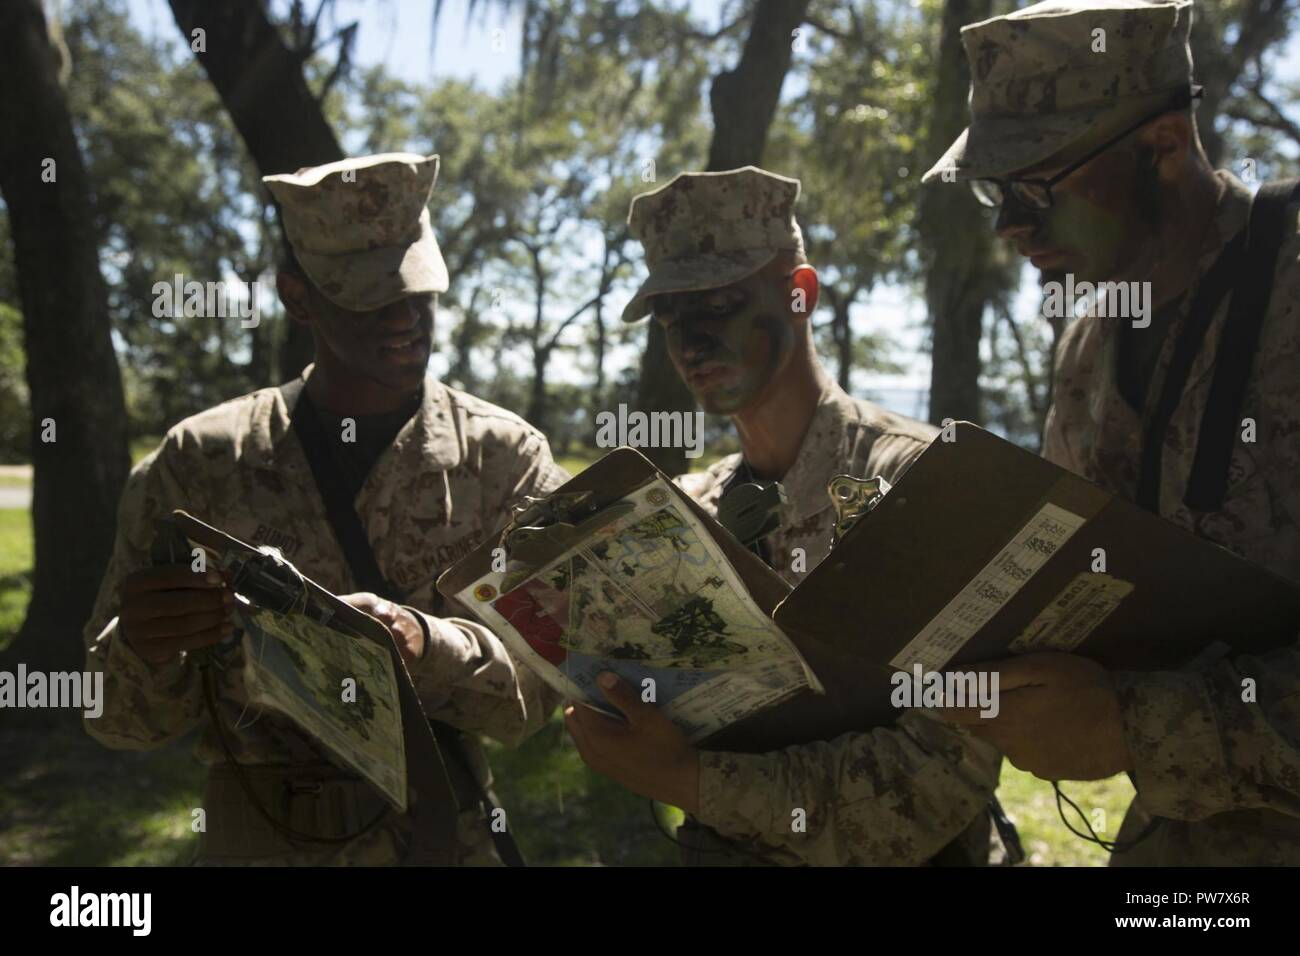 U.S. Marine Corps Recruits with Delta Company, 1st Battalion, Recruit Training Regiment, record their plot points at Elliot's Beach on Marine Corps Recruit Depot, Parris Island, S.C., Sept. 25, 2017.  The Land Navigation Course teaches recruits how to properly navigate unfamiliar terrain. Stock Photo